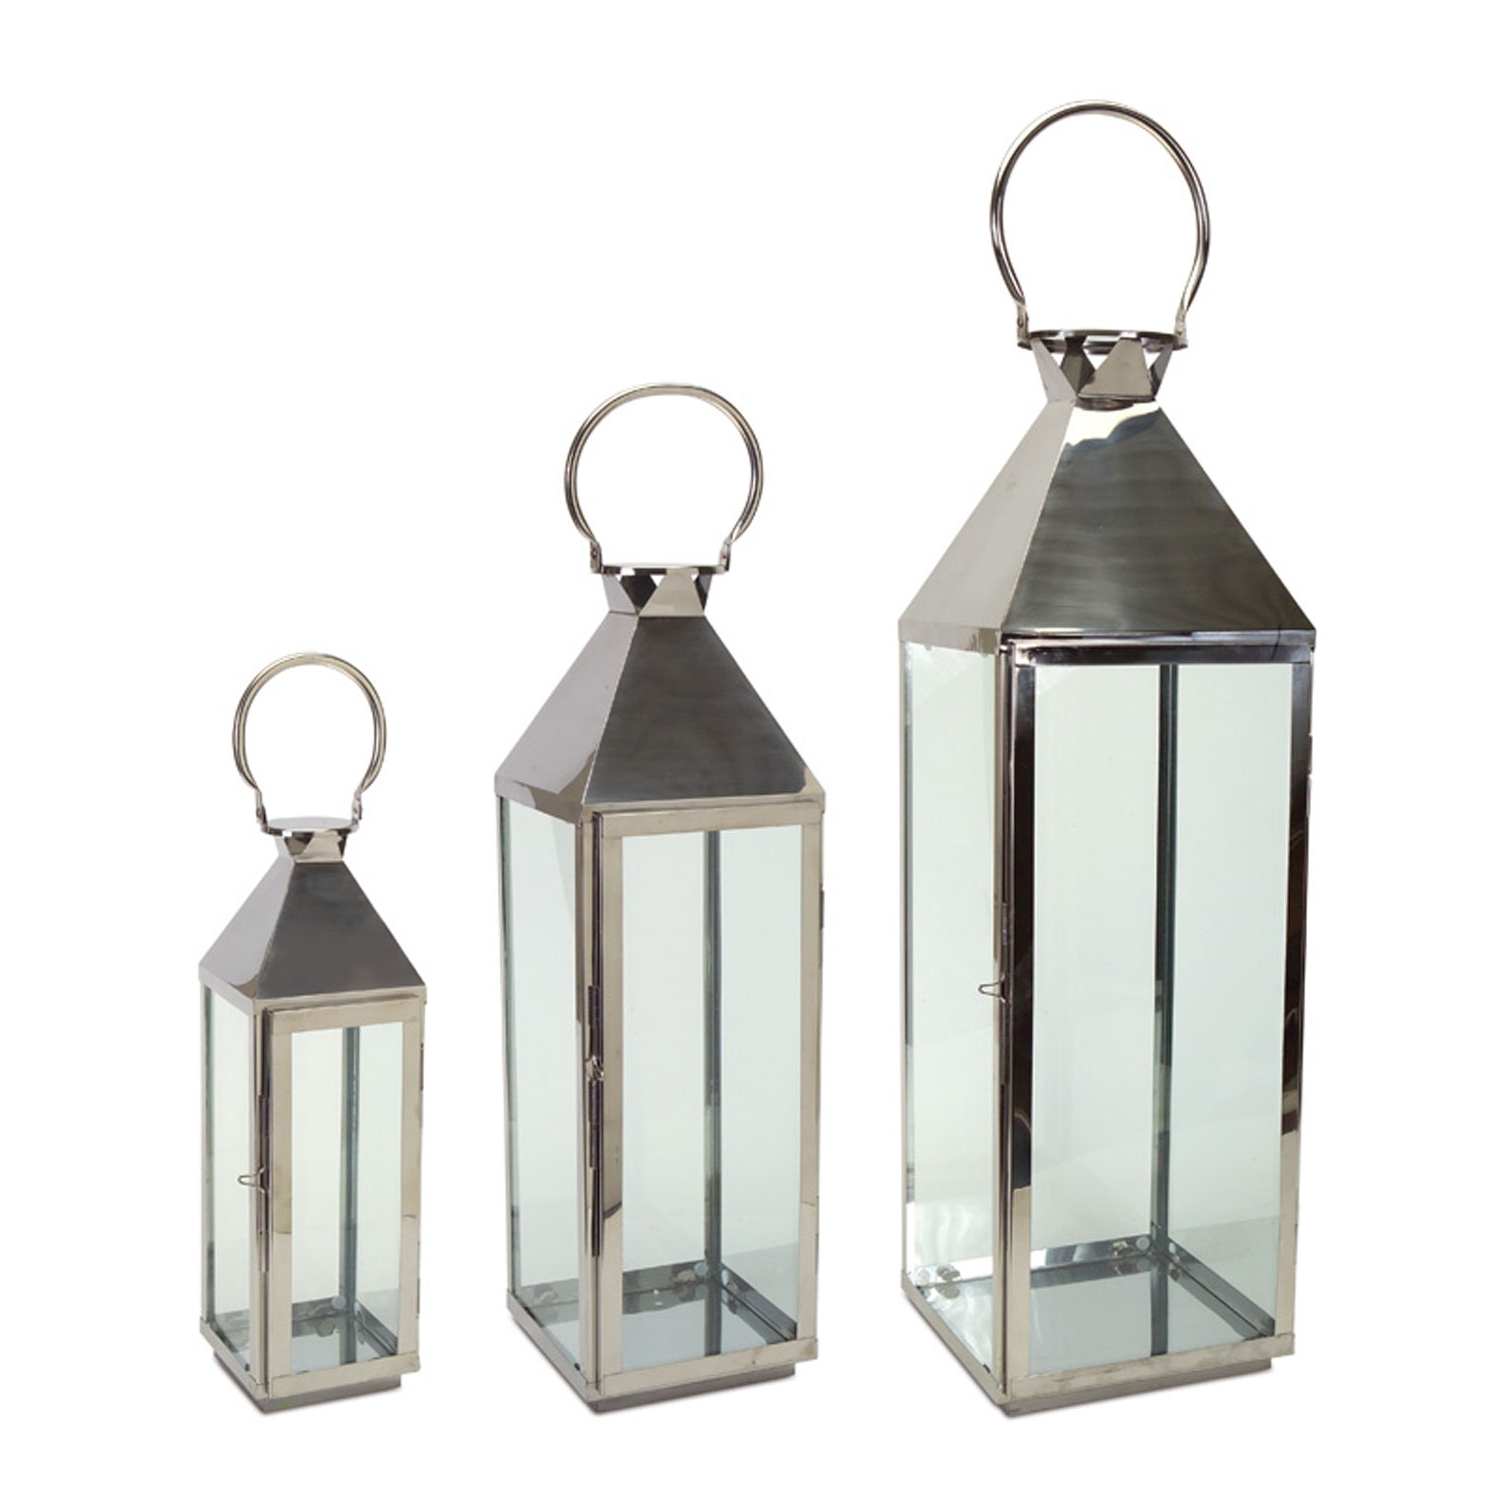 Latest Candle Lanterns, Outdoor Hanging Lanterns, Decorative On Sale Regarding Outdoor Hanging Candle Lanterns At Wholesale (View 7 of 20)